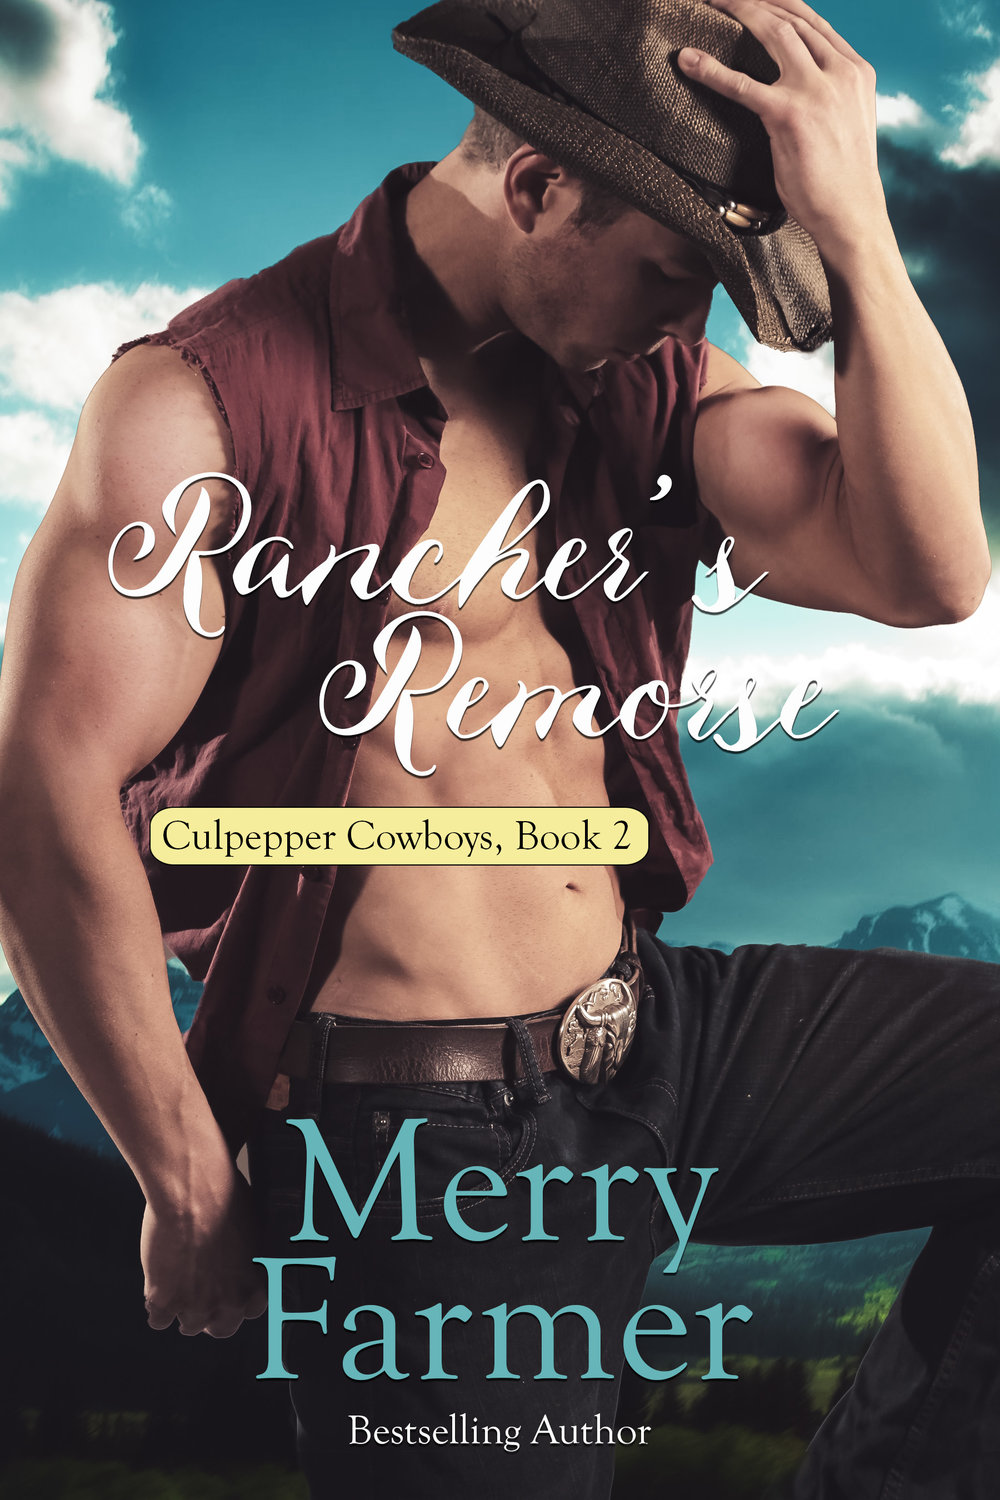 Rancher's Remorse (Book 2) - Faith Quinlan agreed to marry Cooper Culpepper as part of the deal she and her sisters signed to help the Culpepper boys fulfill the terms of their Granddaddy's will so they could keep the family ranch. But what Cooper doesn't know might hurt him. Faith is more than willing to help Cooper out—as he discovers, to his delight, on their wedding night—the trouble is, she thinks she's not able.But Faith has more than one secret. Her quaint doll-making hobby is more than just a little fun, her dolls have become a nationwide phenomenon. When a reporter shows up to do a story about Faith, Cooper gets all the wrong ideas…and those wrong ideas could spell disaster for their brand-new marriage. Can Faith face her fears and tell Cooper the truth…before Cooper carts her off to the loony bin or jail?PLEASE BE ADVISED: Steam Level = HOT